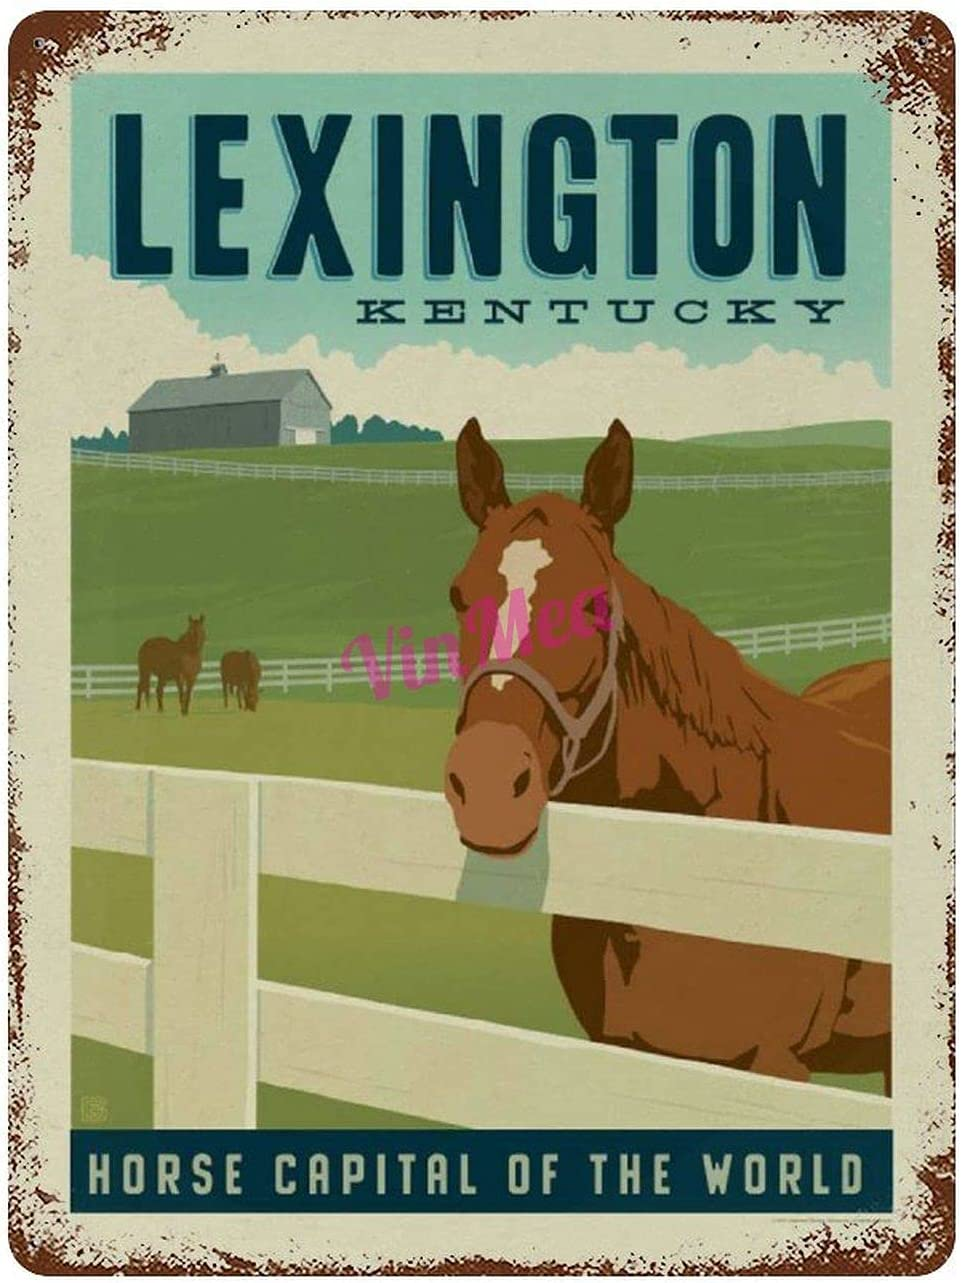 Vintage Iron Painting Lexington, KY Horse Capital of The World Retro Metal Signs Poster Wall Decor for Bar Cafe Home Garage 12×8 inches